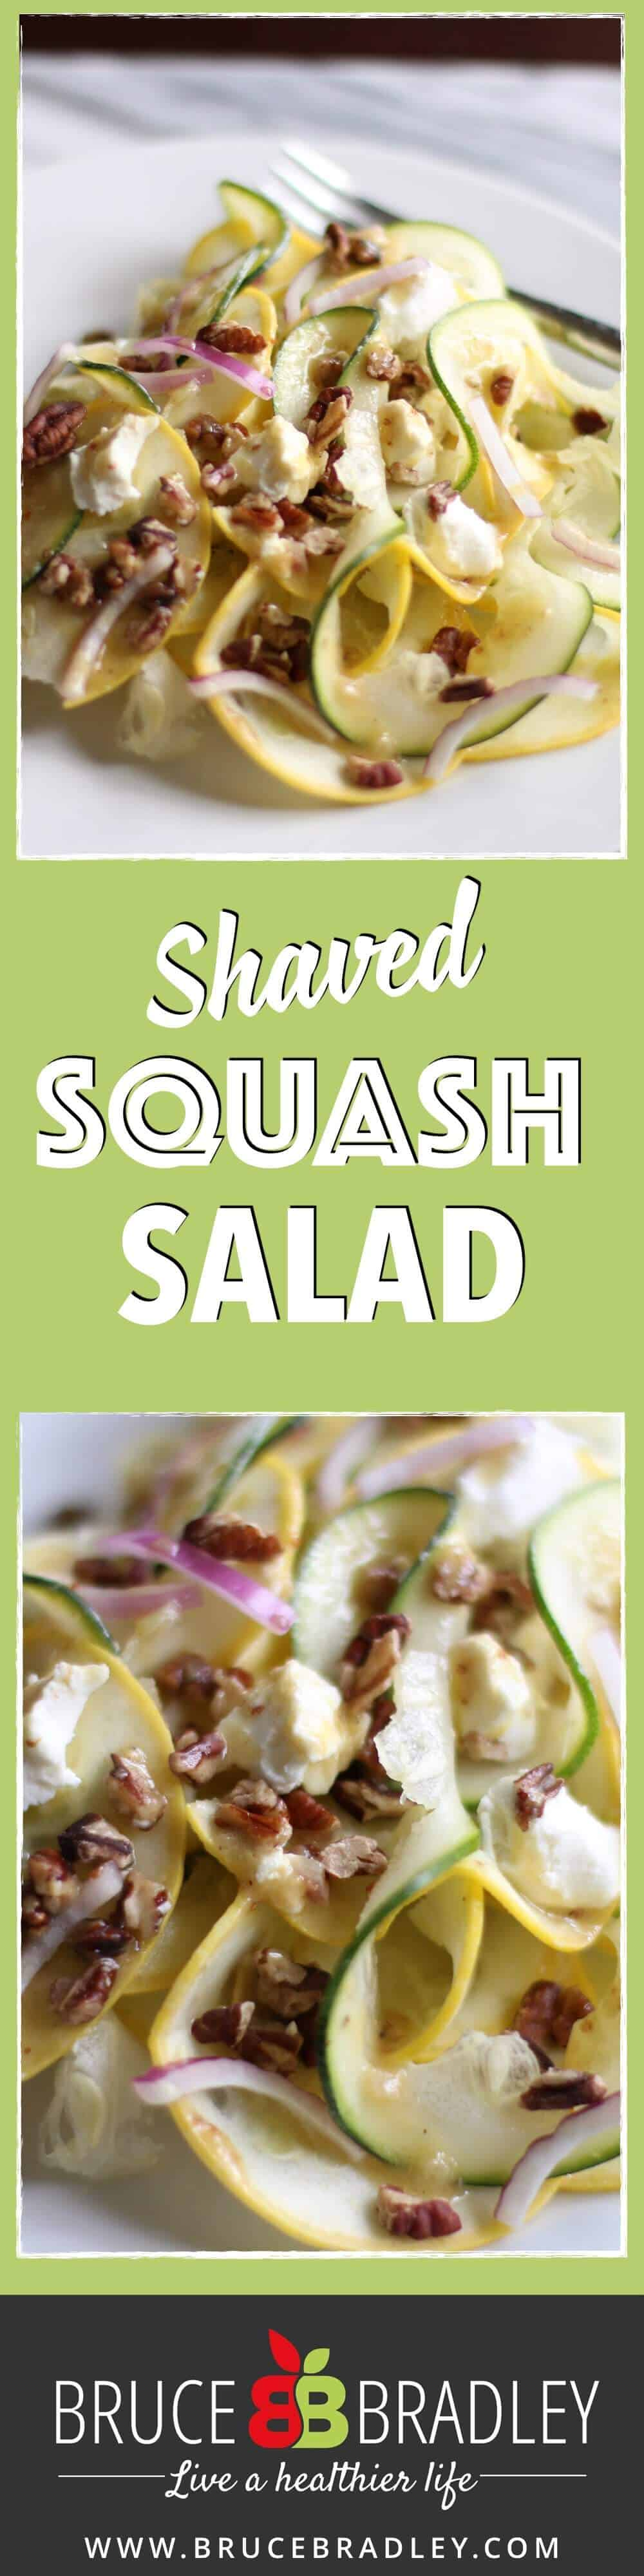 Looking to shake things up with your salads? Then try this Shaved Squash Salad with Chevre and a Mustard Vinaigrette. Can you say delicious!?!?!